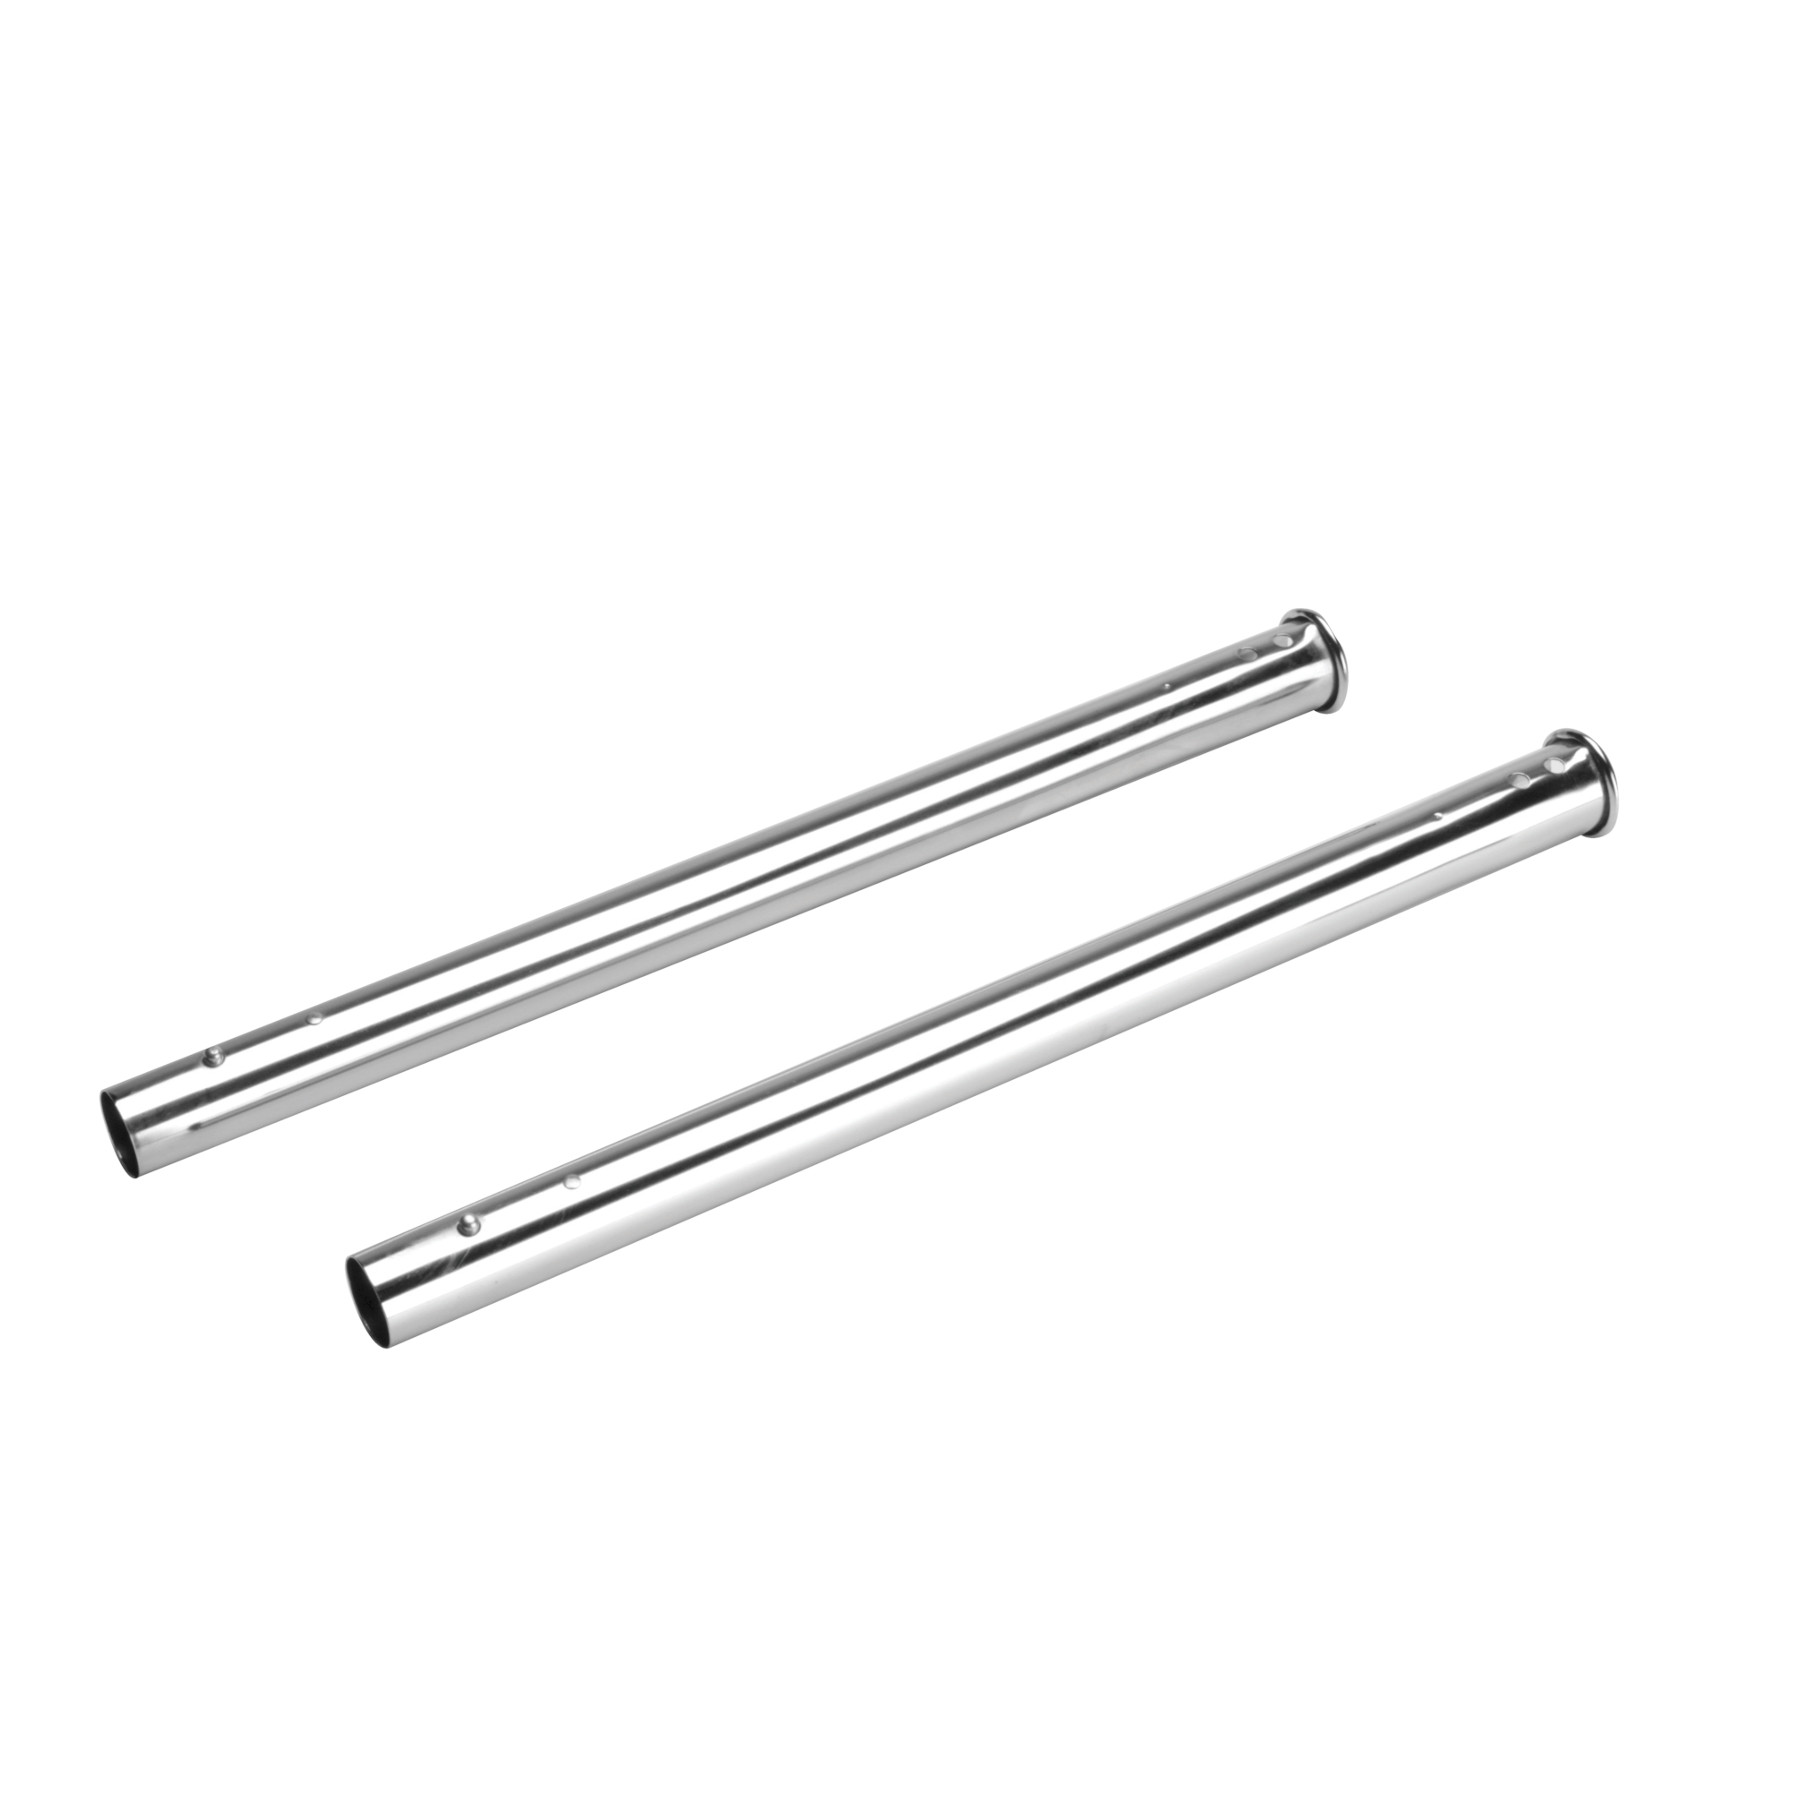 Button Lock Wands for Central Vacuums, with Plated Chrome Finish